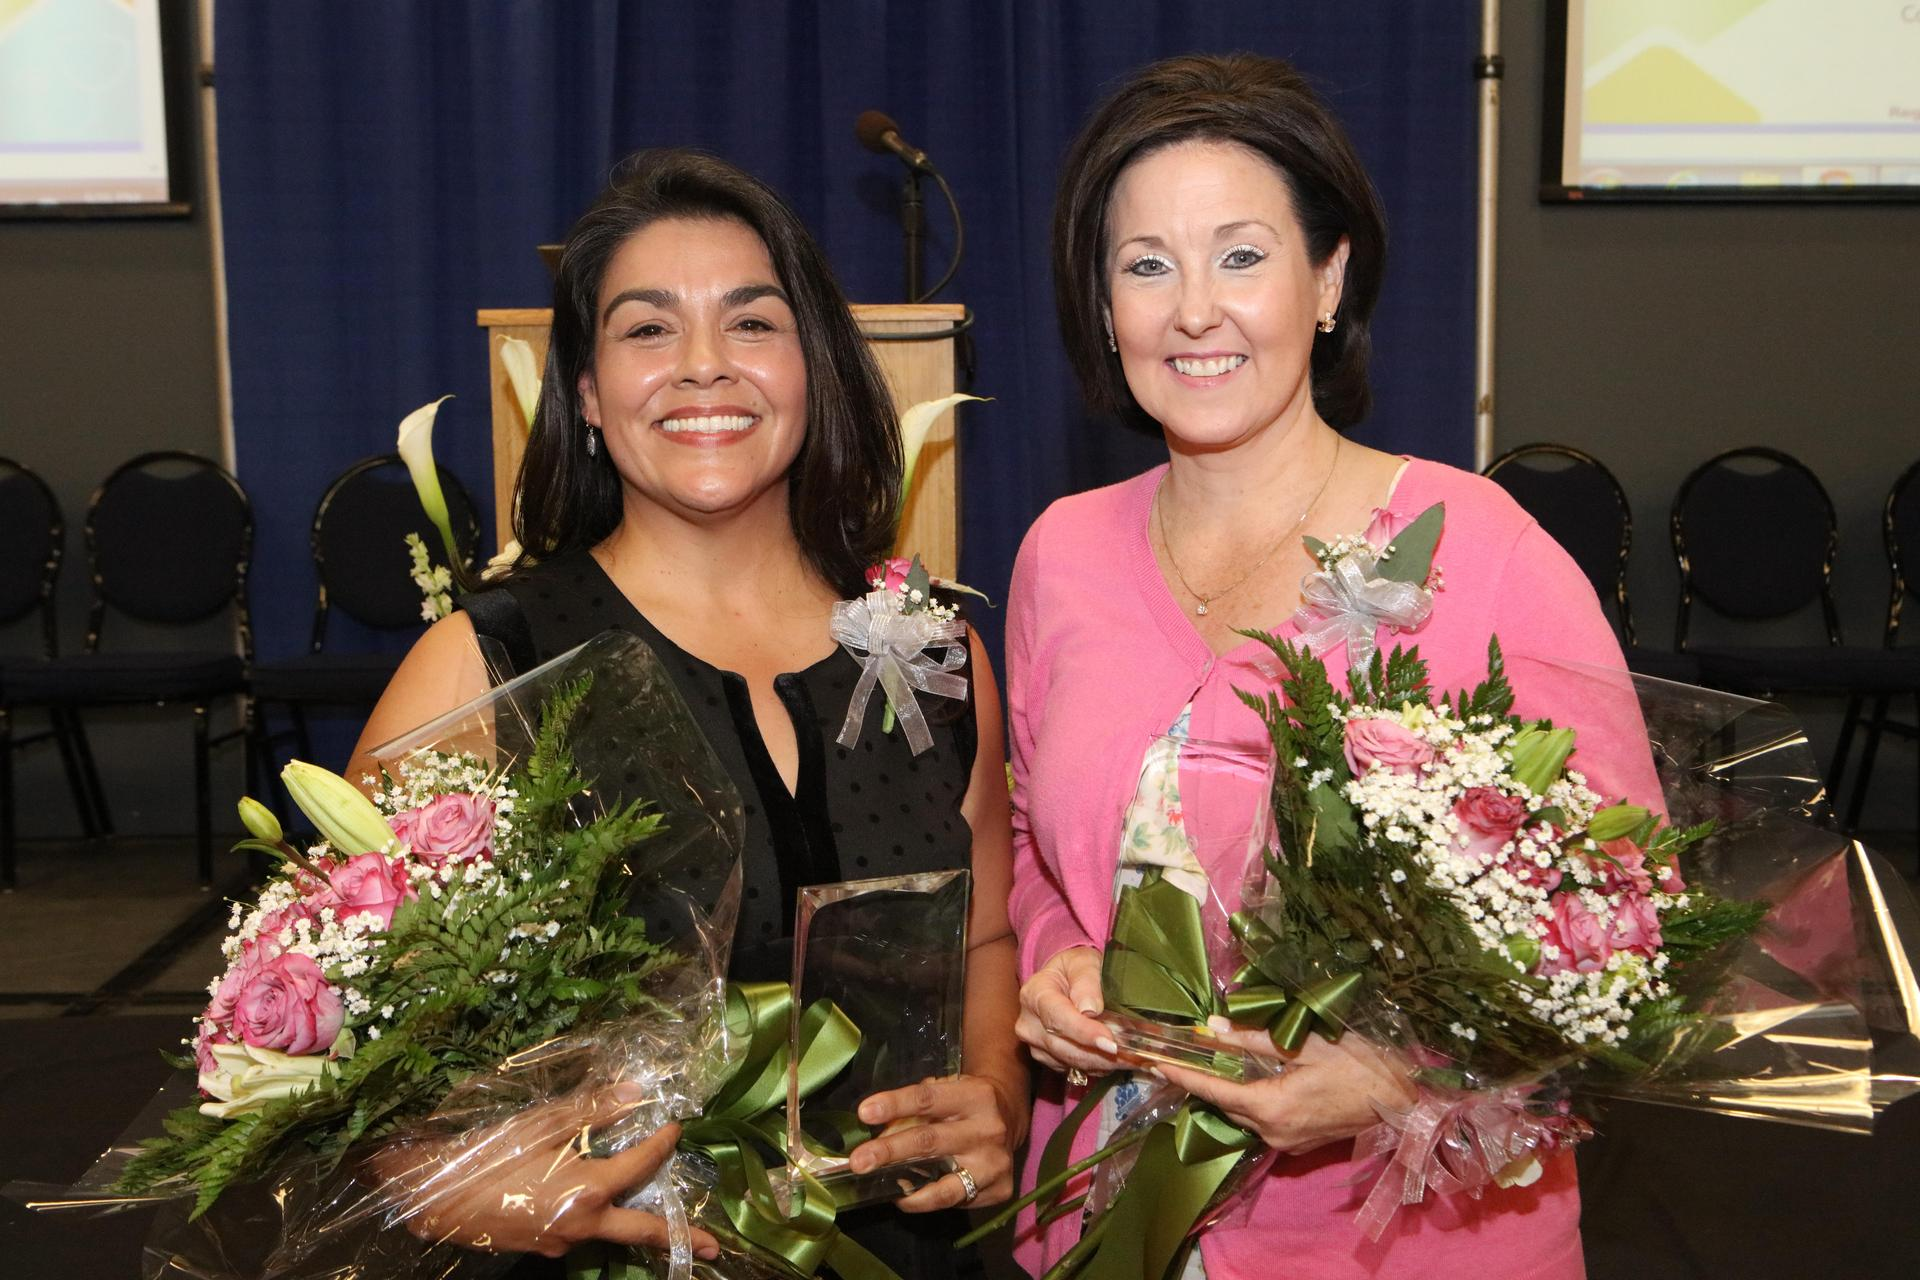 2019-2020 District Elementary and Secondary Teachers of the Year, Michelle Frazier and Delia Perez